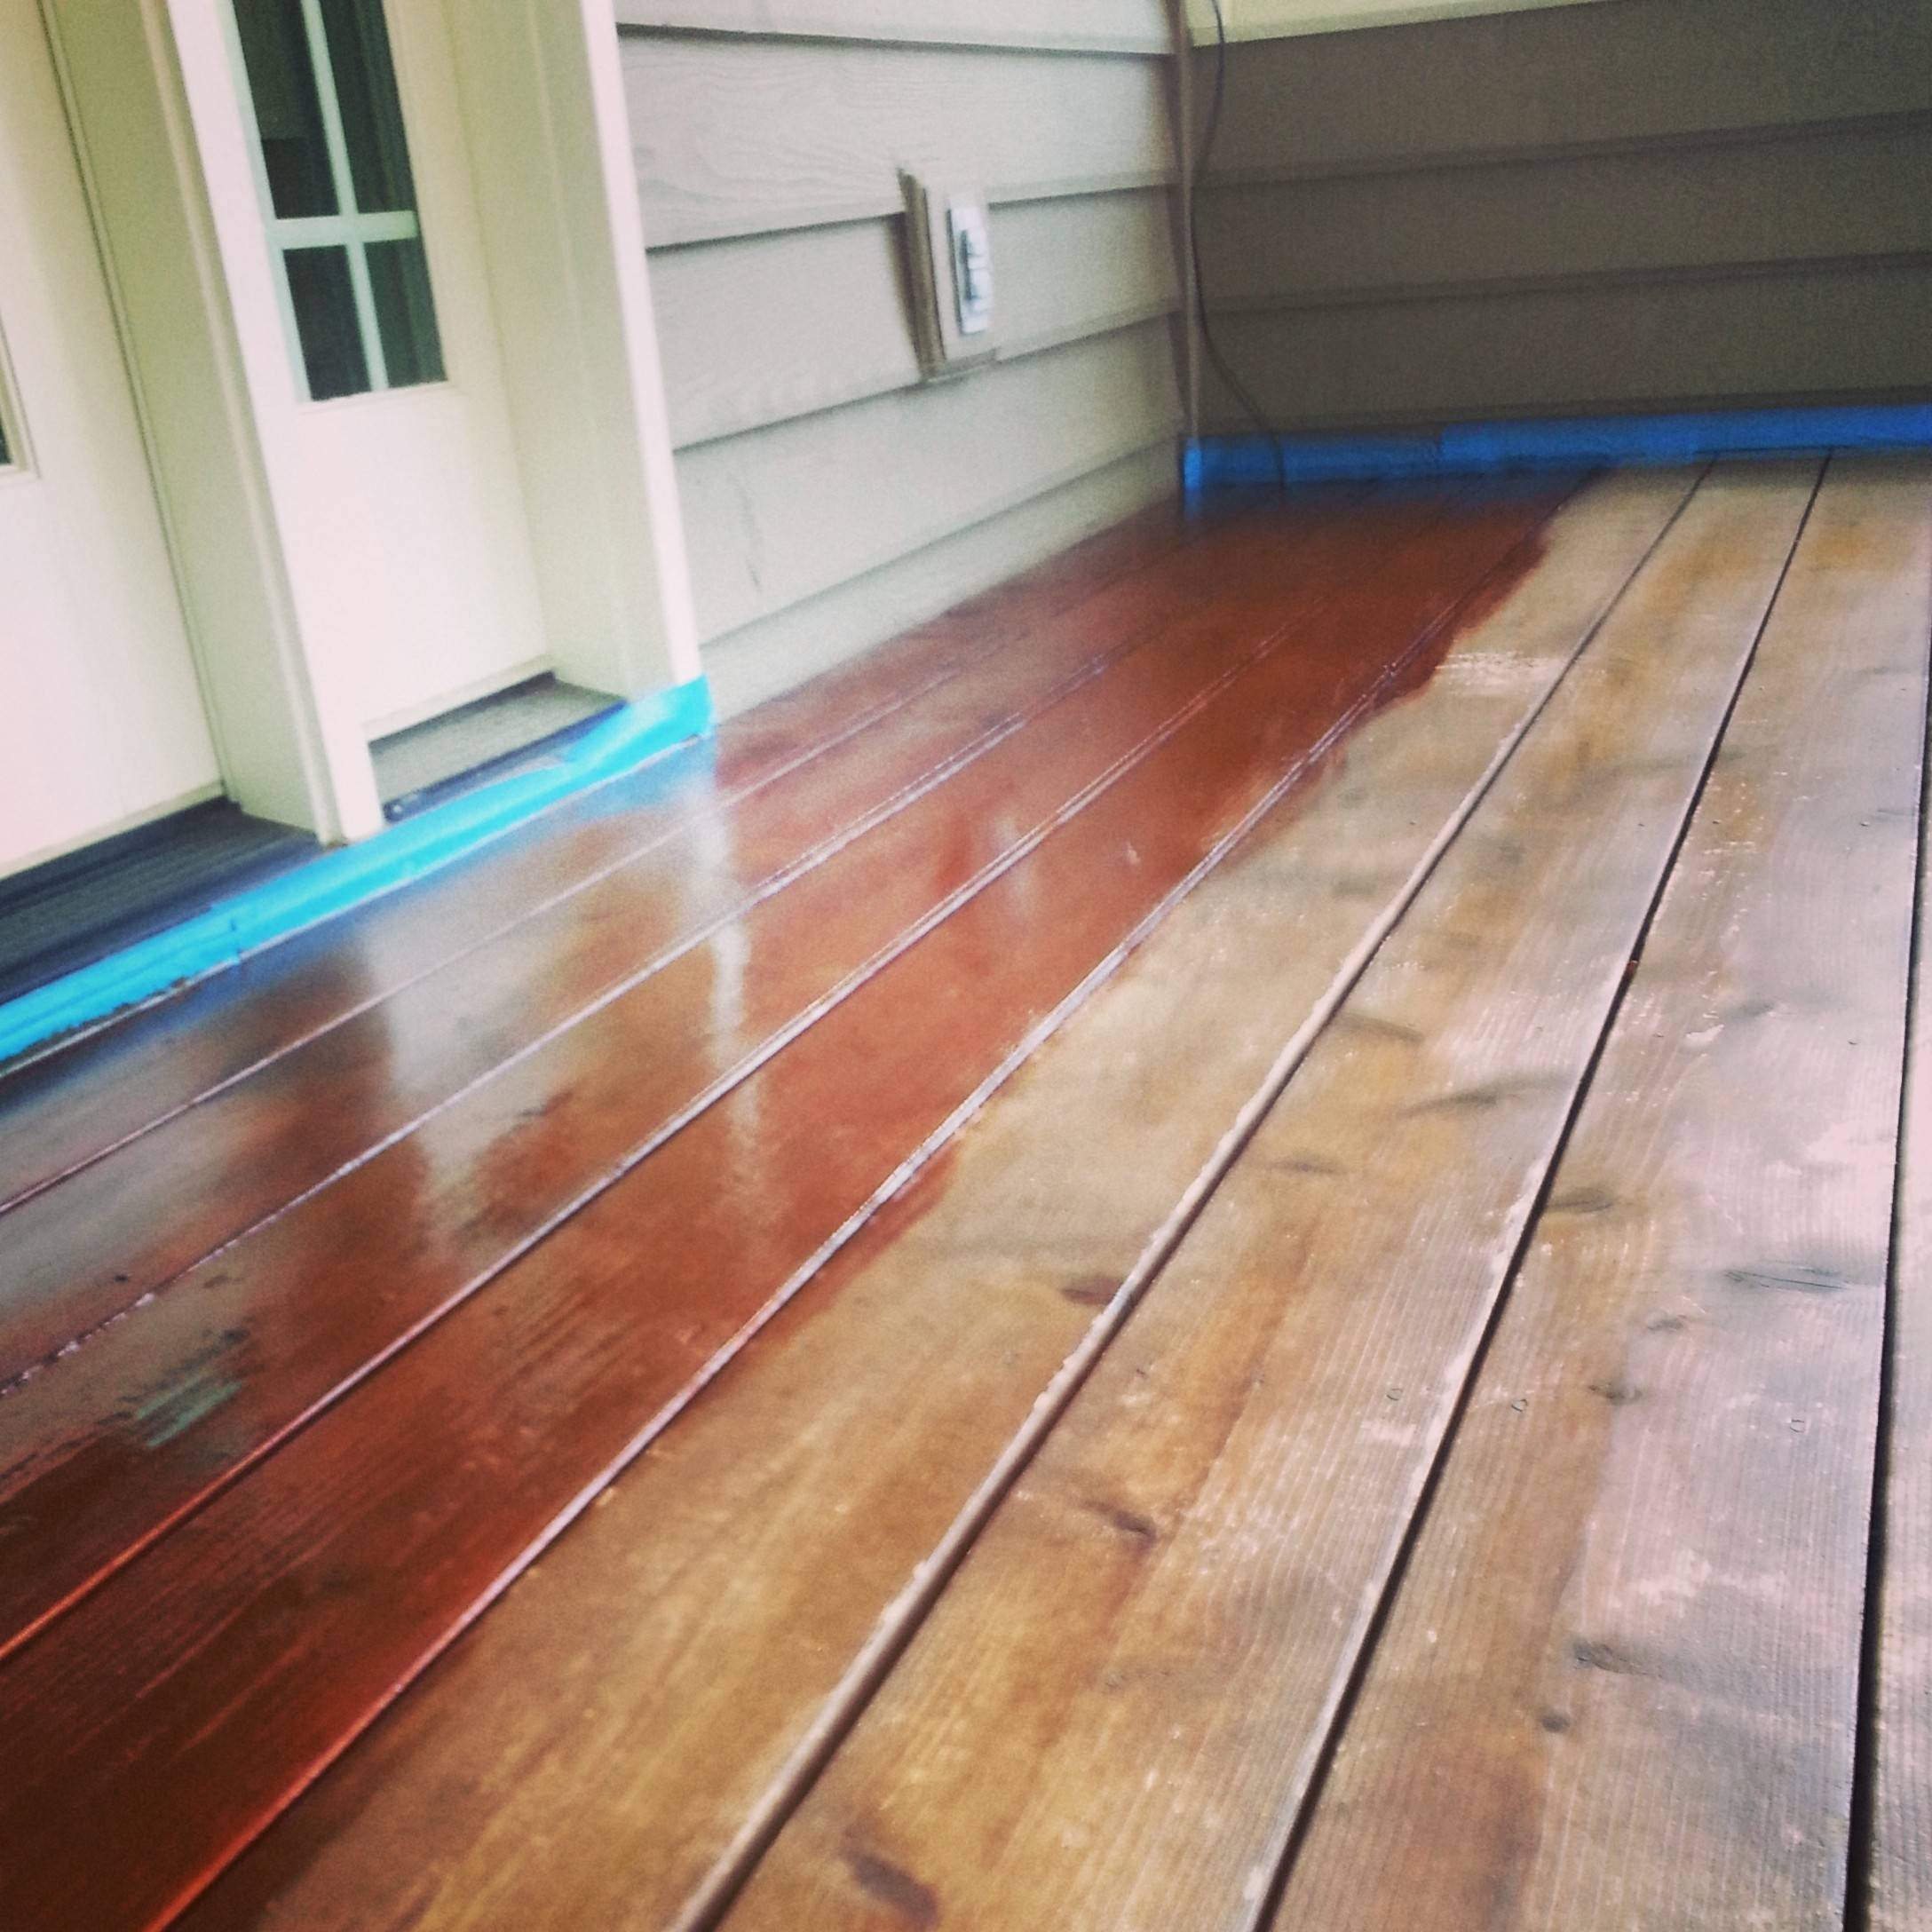 The Deck Monkeys division of SCC Cleaning Co. in Gurnee stains decks using Australian timber oil.